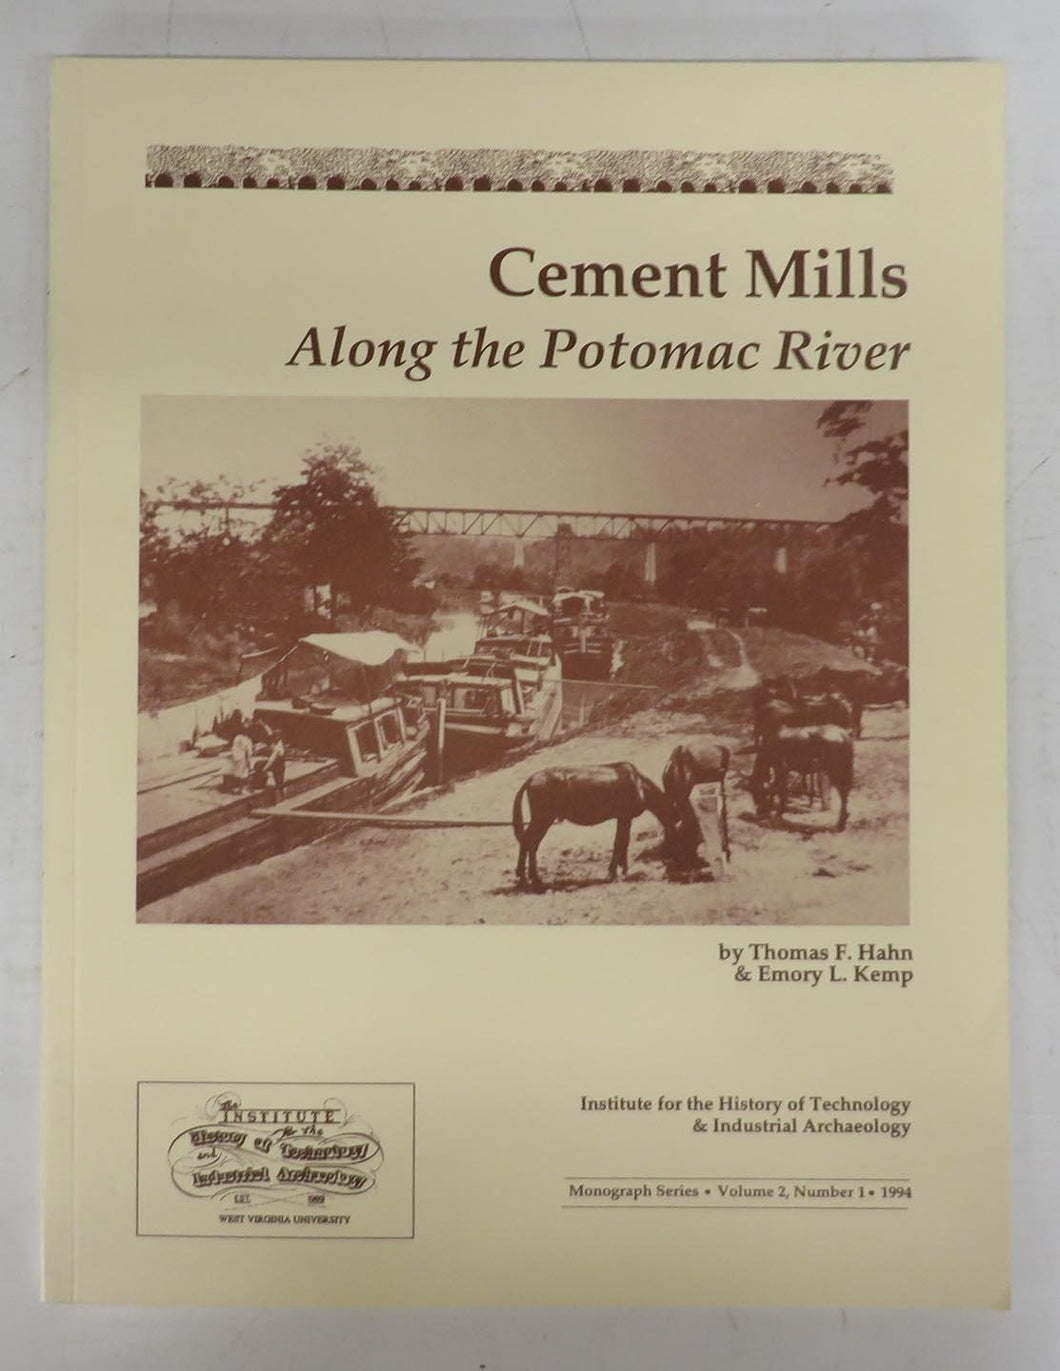 Cement Mills Along the Potomac River